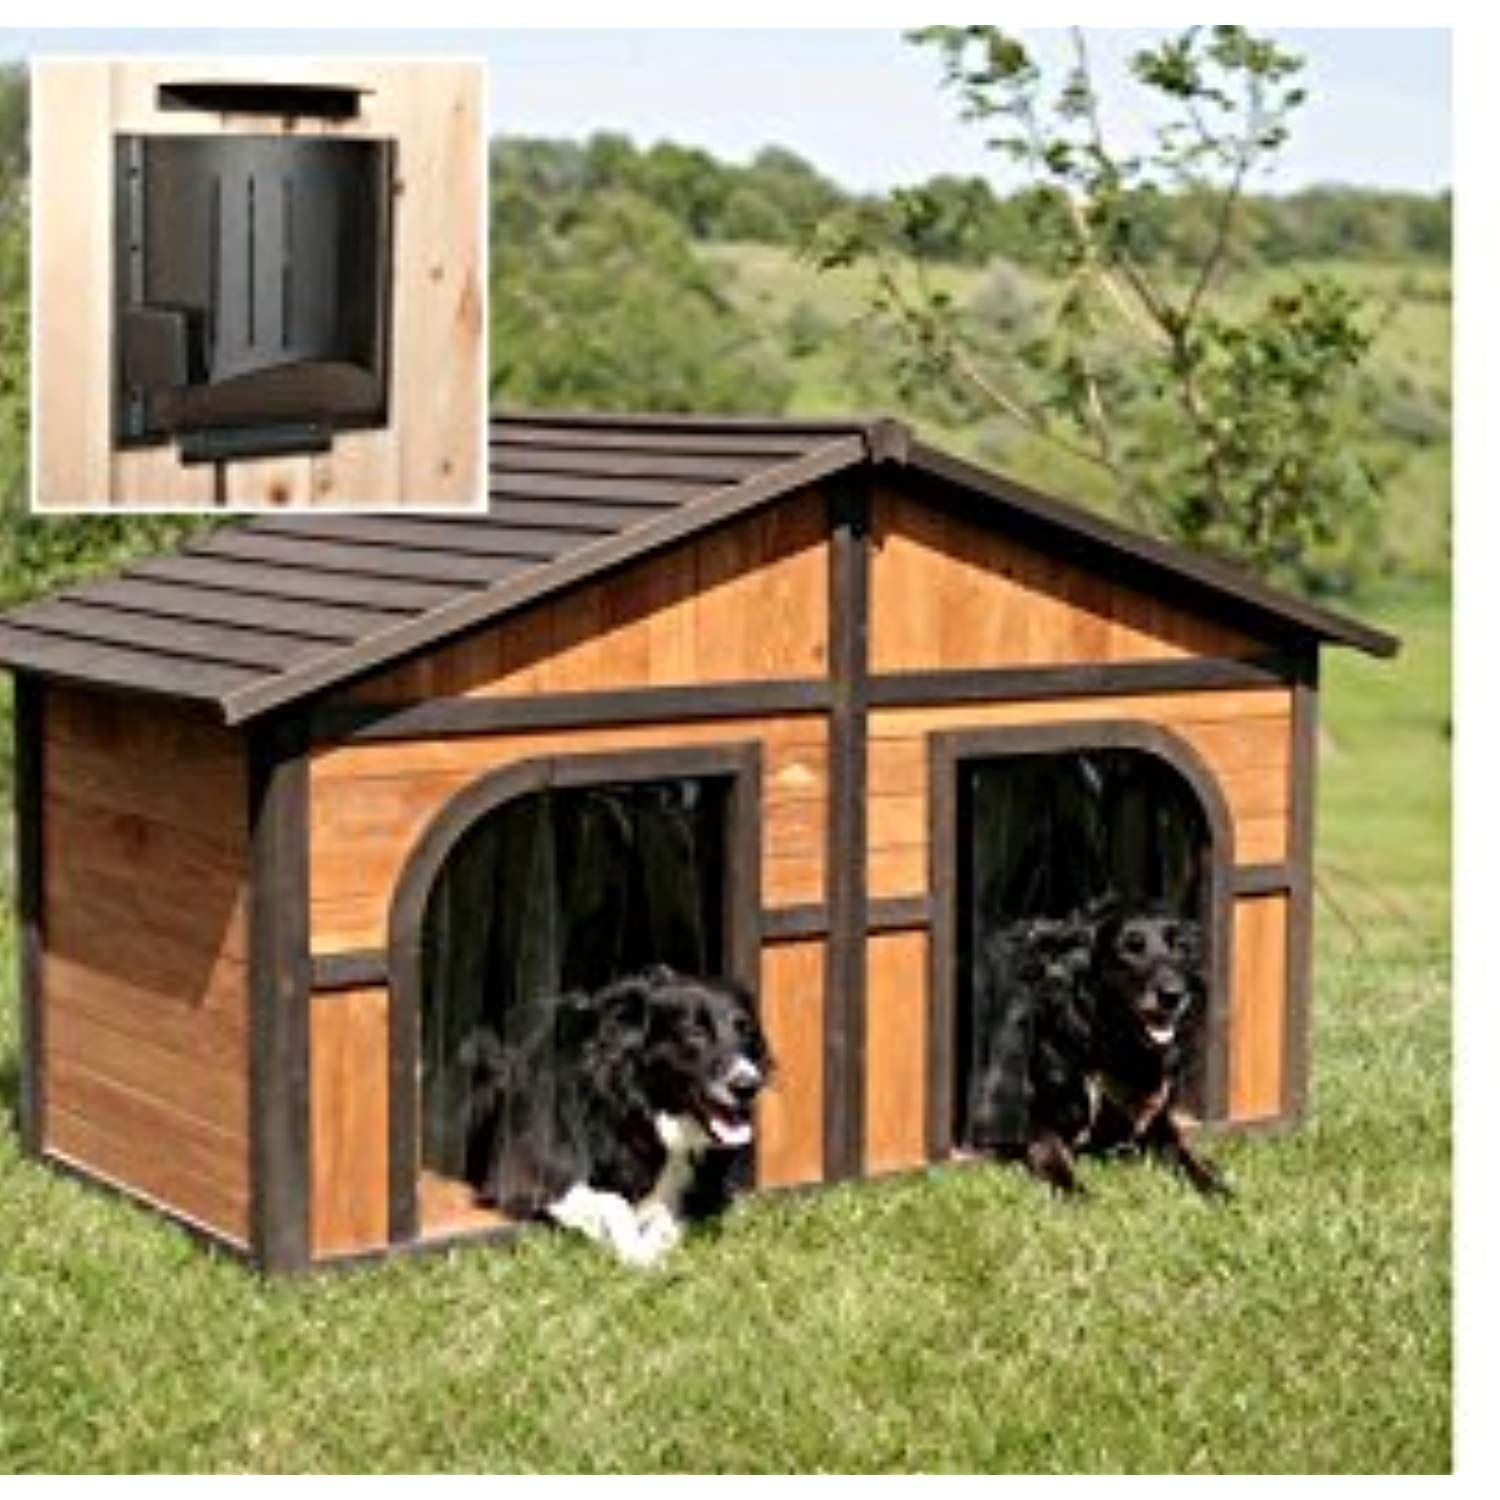 Solid Wood Construction Heated Extra Large Dog House For One Or